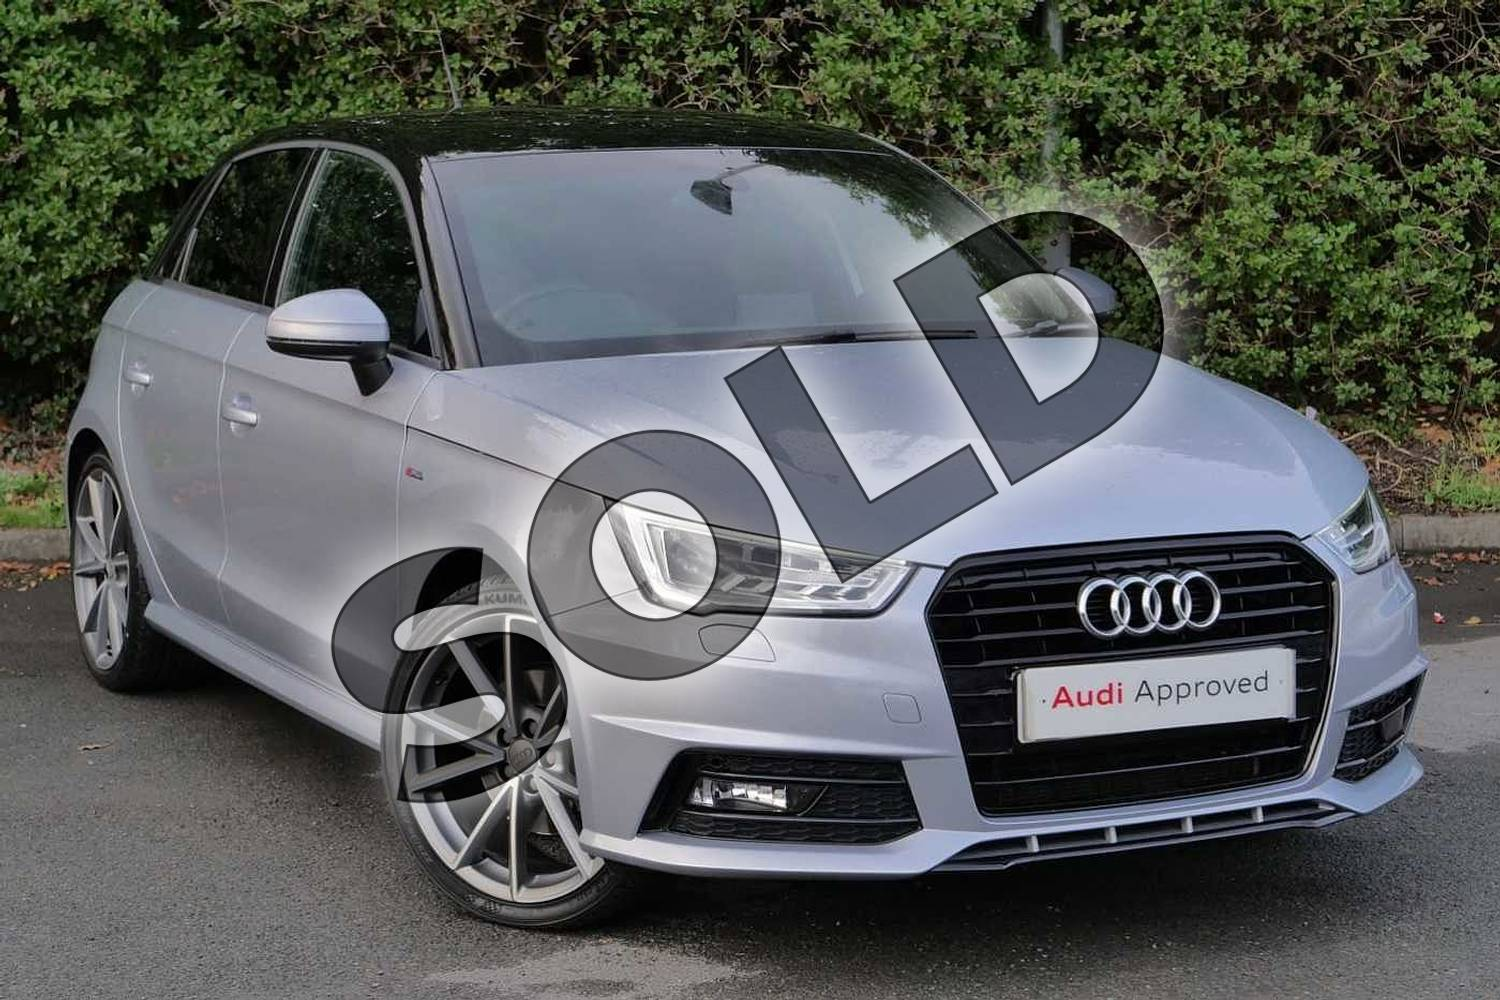 2016 Audi A1 Sportback Special Editions 1.6 TDI Black Edition 5dr in Floret Silver Metallic at Worcester Audi